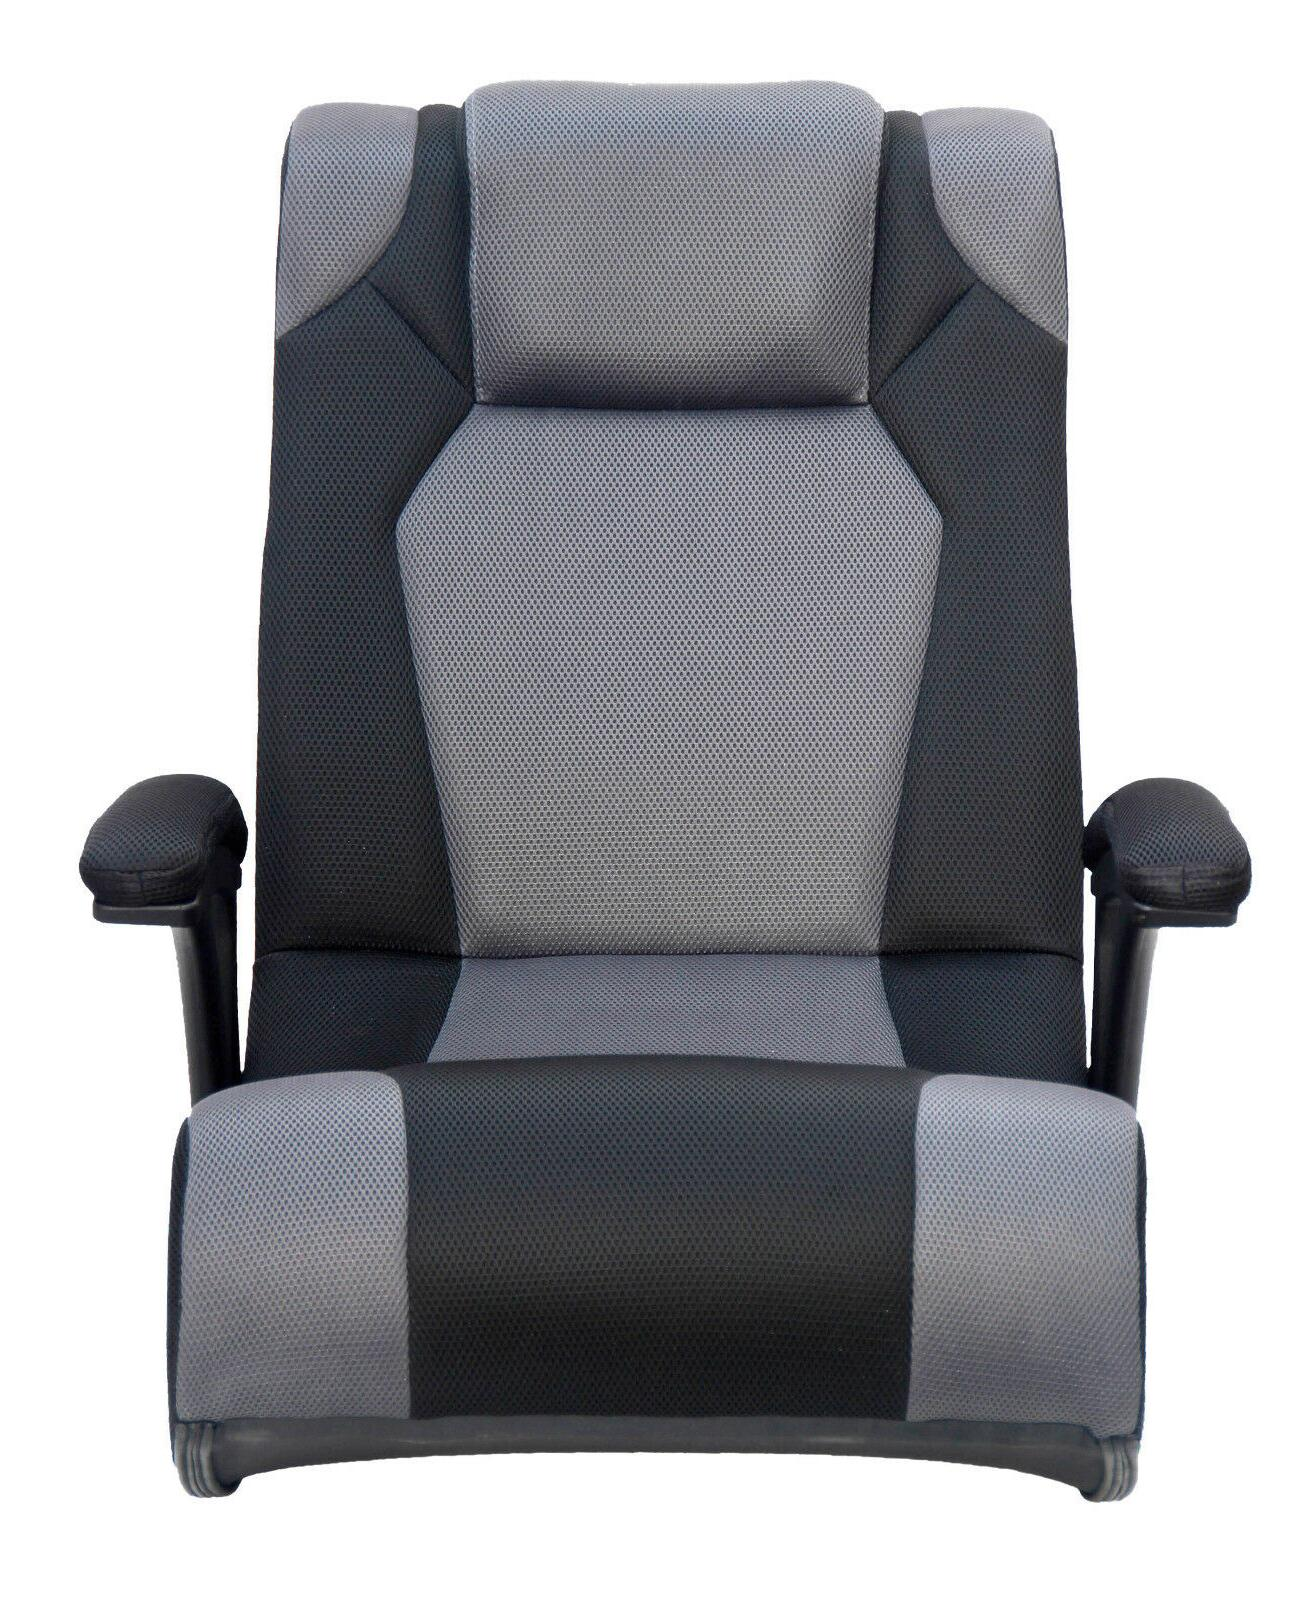 Chair Sound Video Game Sport